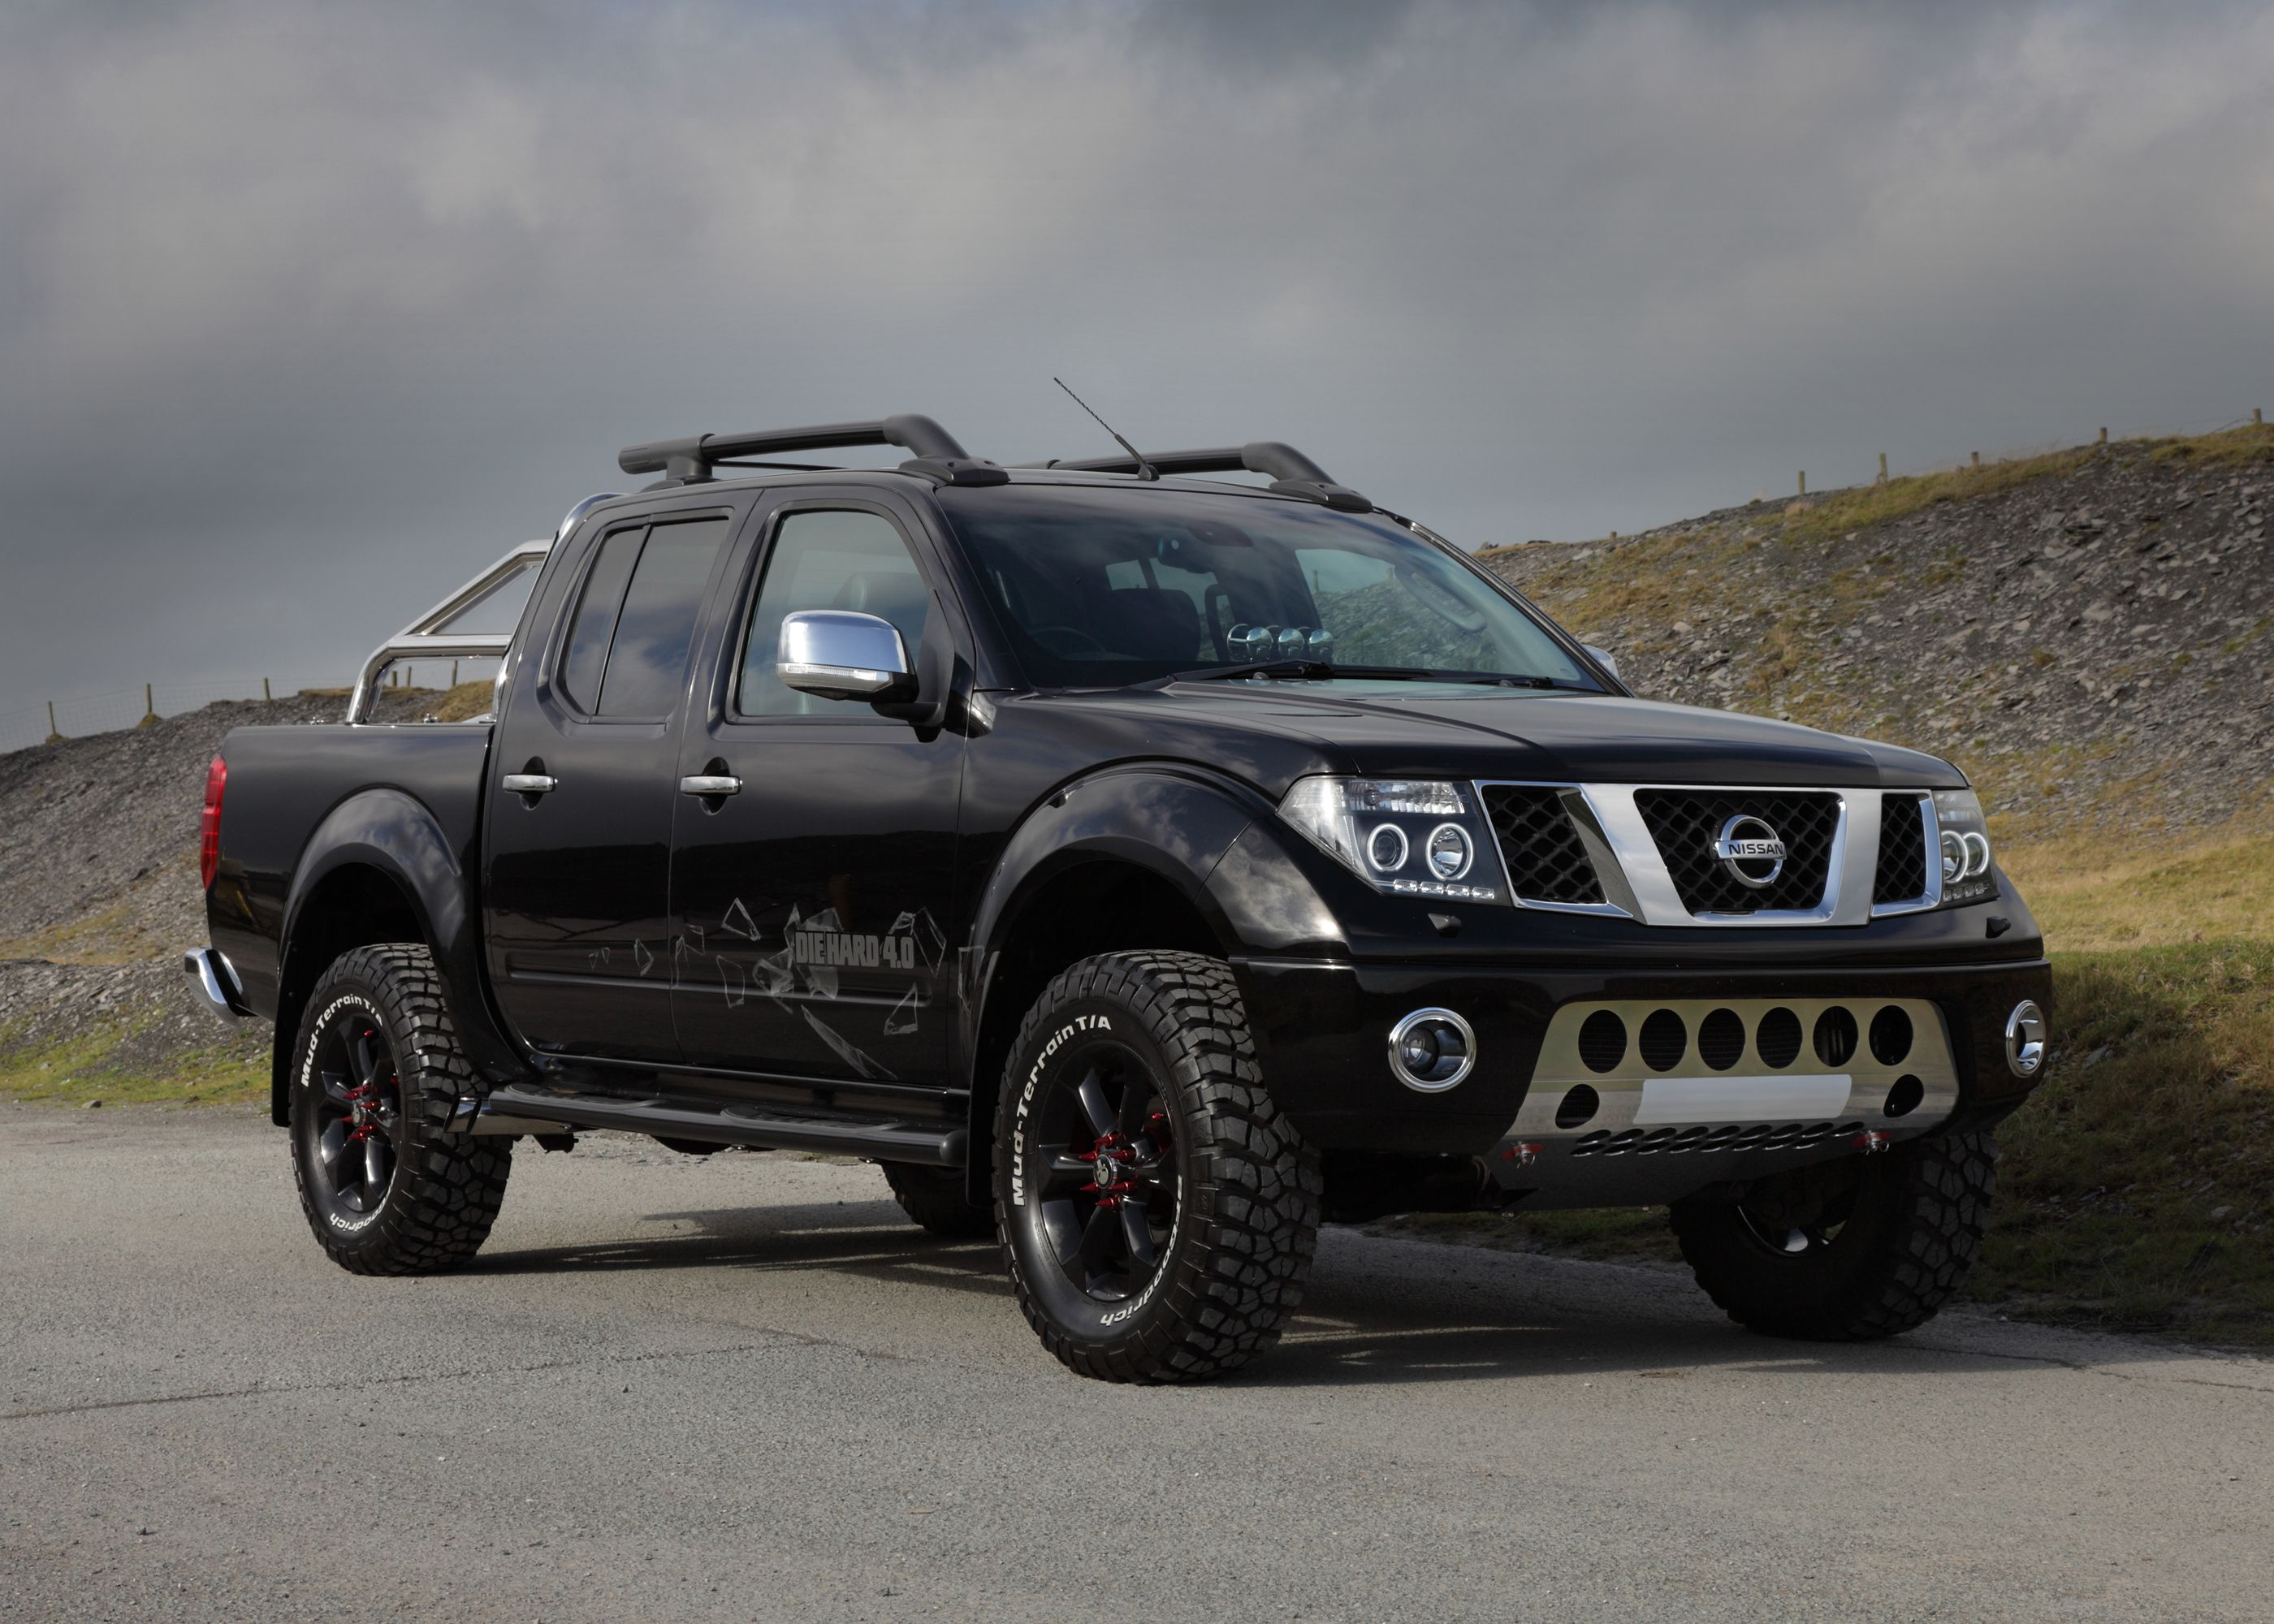 lifted truck custom nissan navara frontier this truck. Black Bedroom Furniture Sets. Home Design Ideas